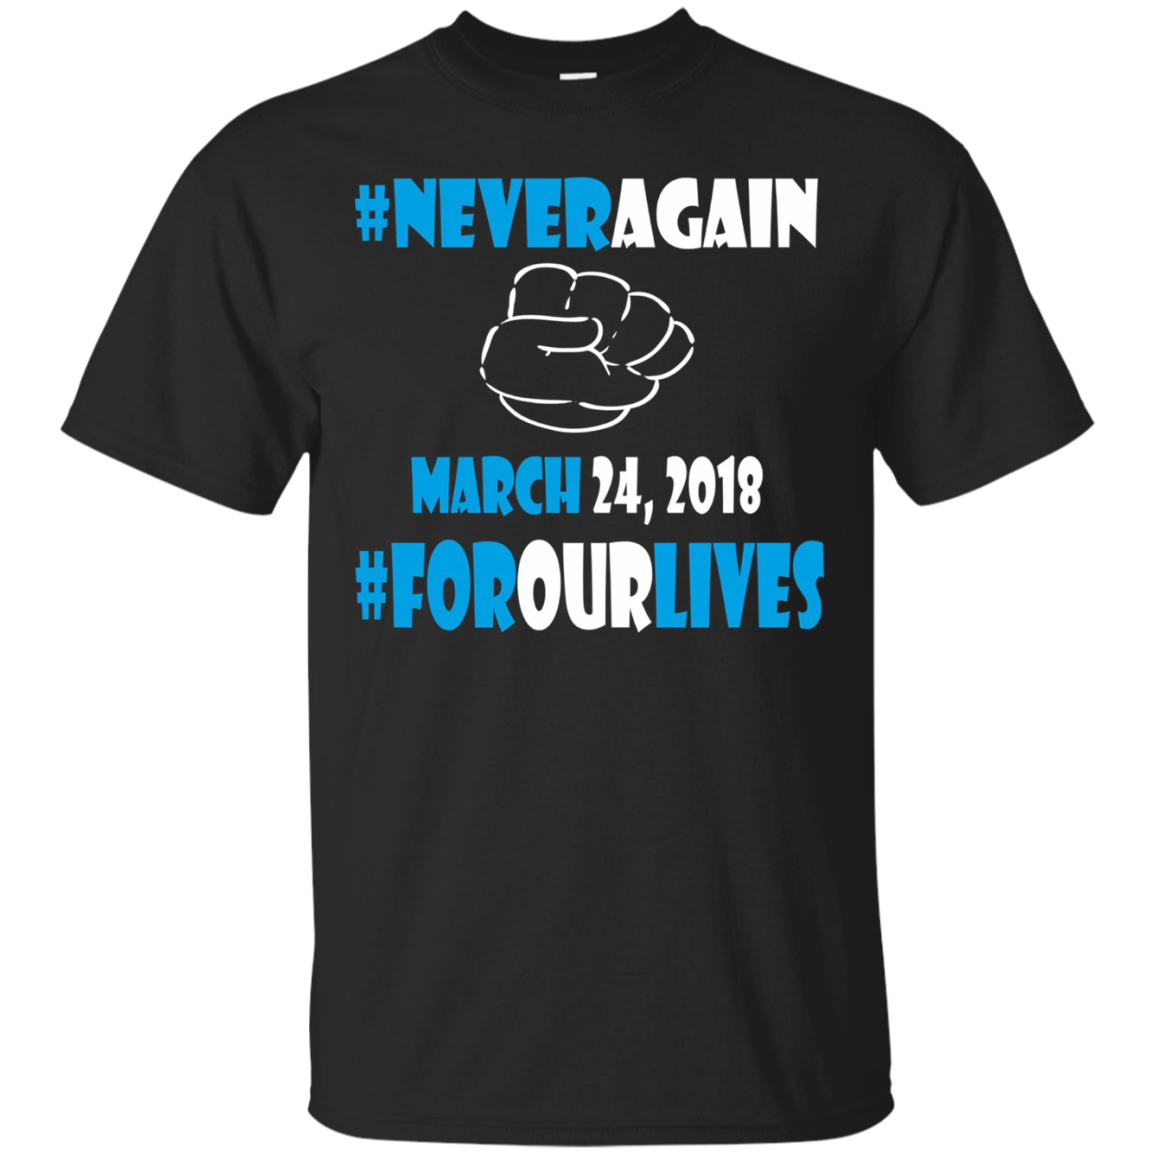 Never Again Sweatshirt for Gun Control